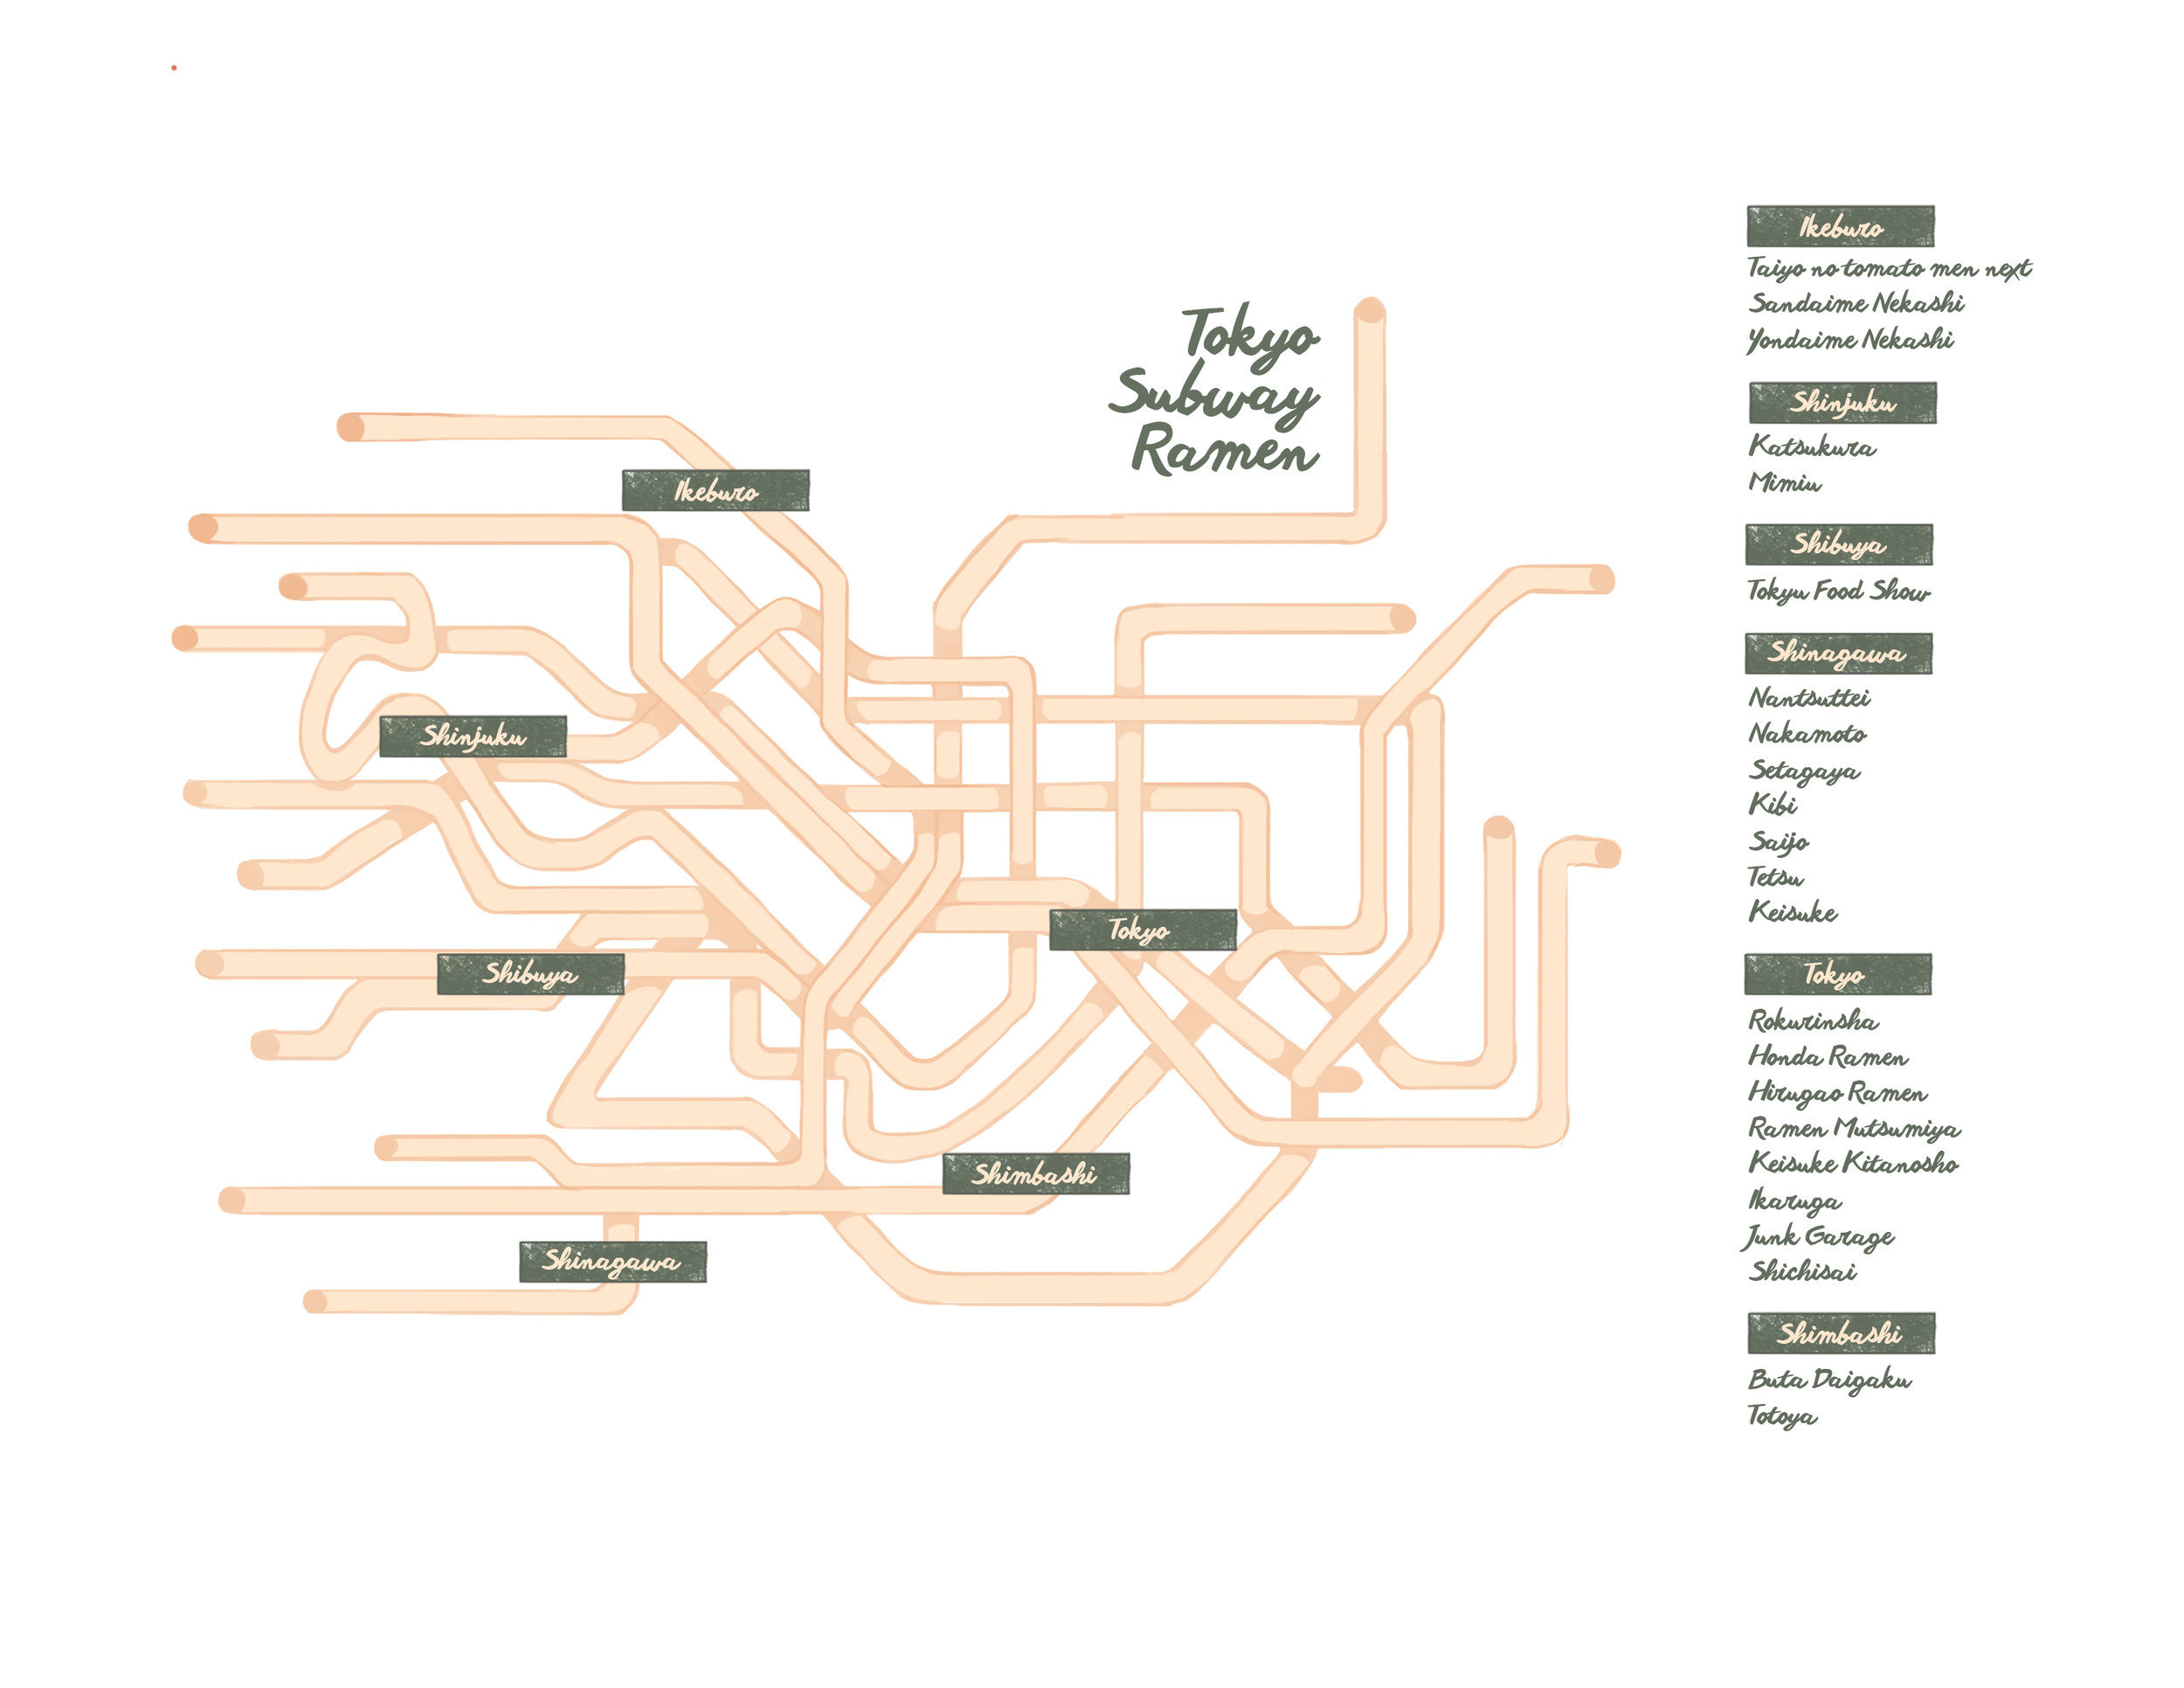 A map of the Tokyo subway system made out of ramen, that marks underground subway noodle shops.